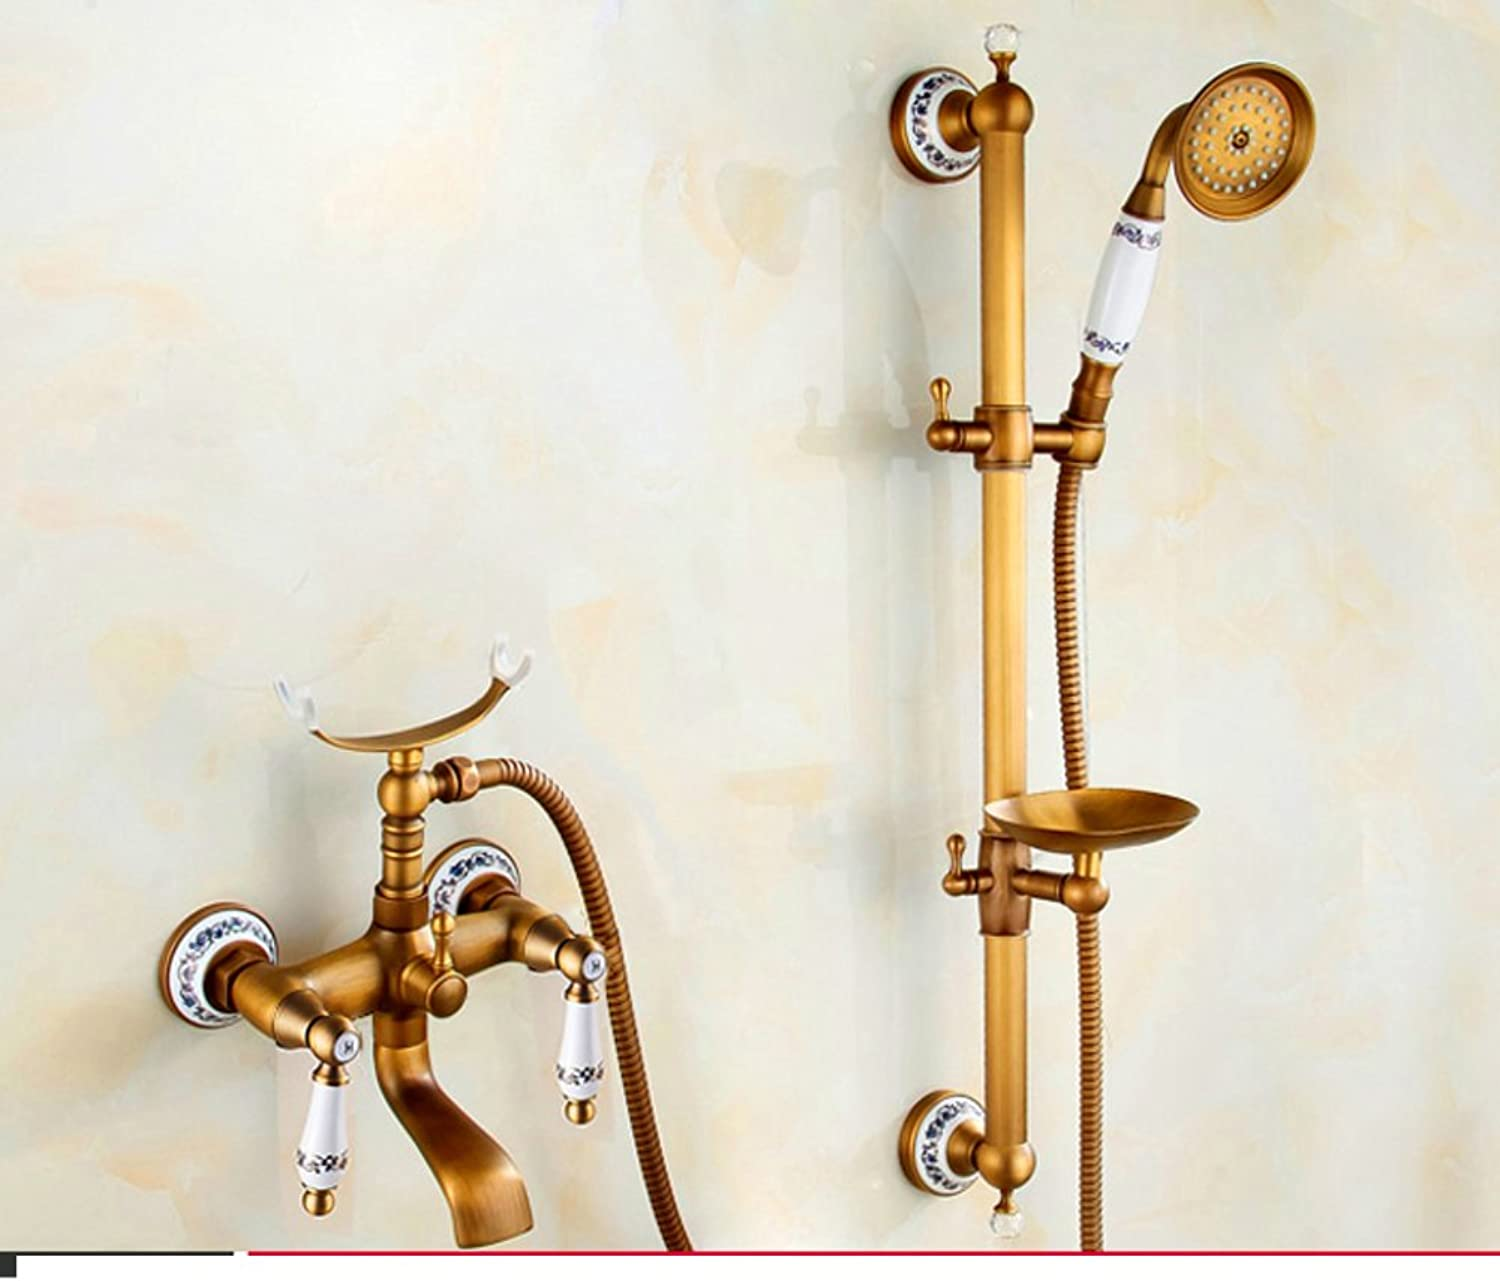 Brass Shower Kit European-Style Shower Head Retro hot and Cold Shower Enclosure-F